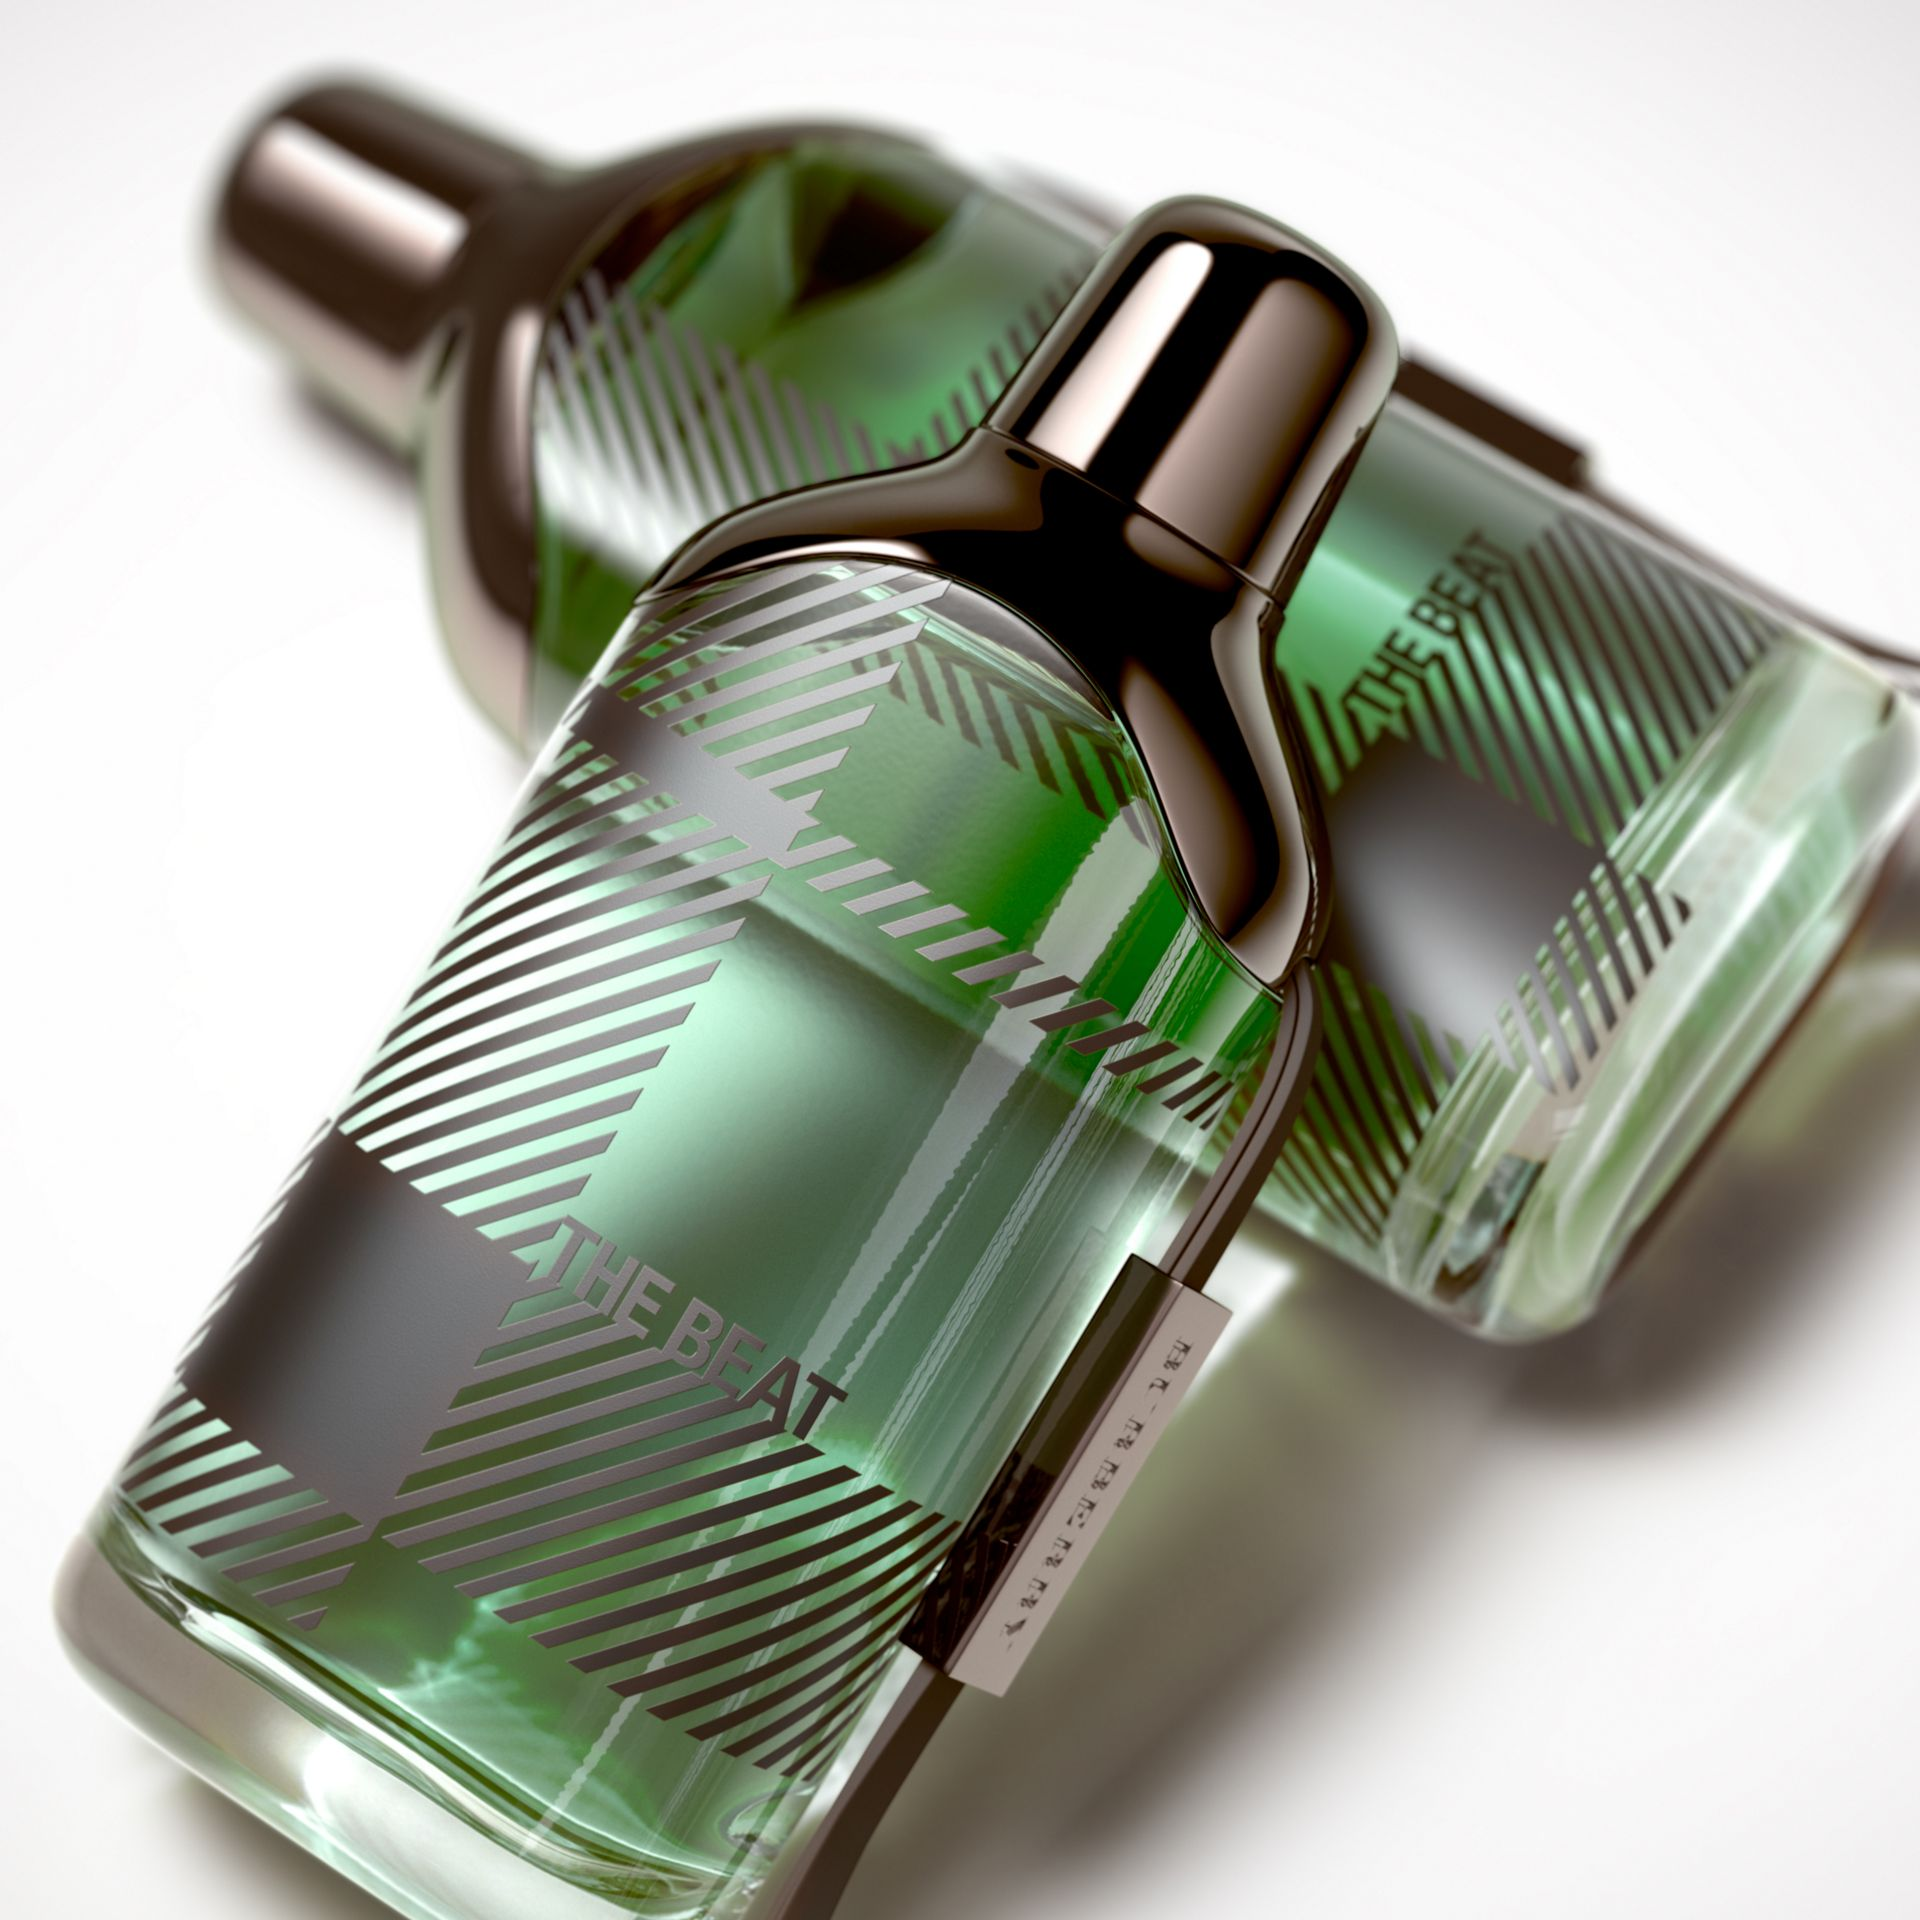 Burberry The Beat Eau de Toilette 50 ml - Uomo | Burberry - immagine della galleria 2